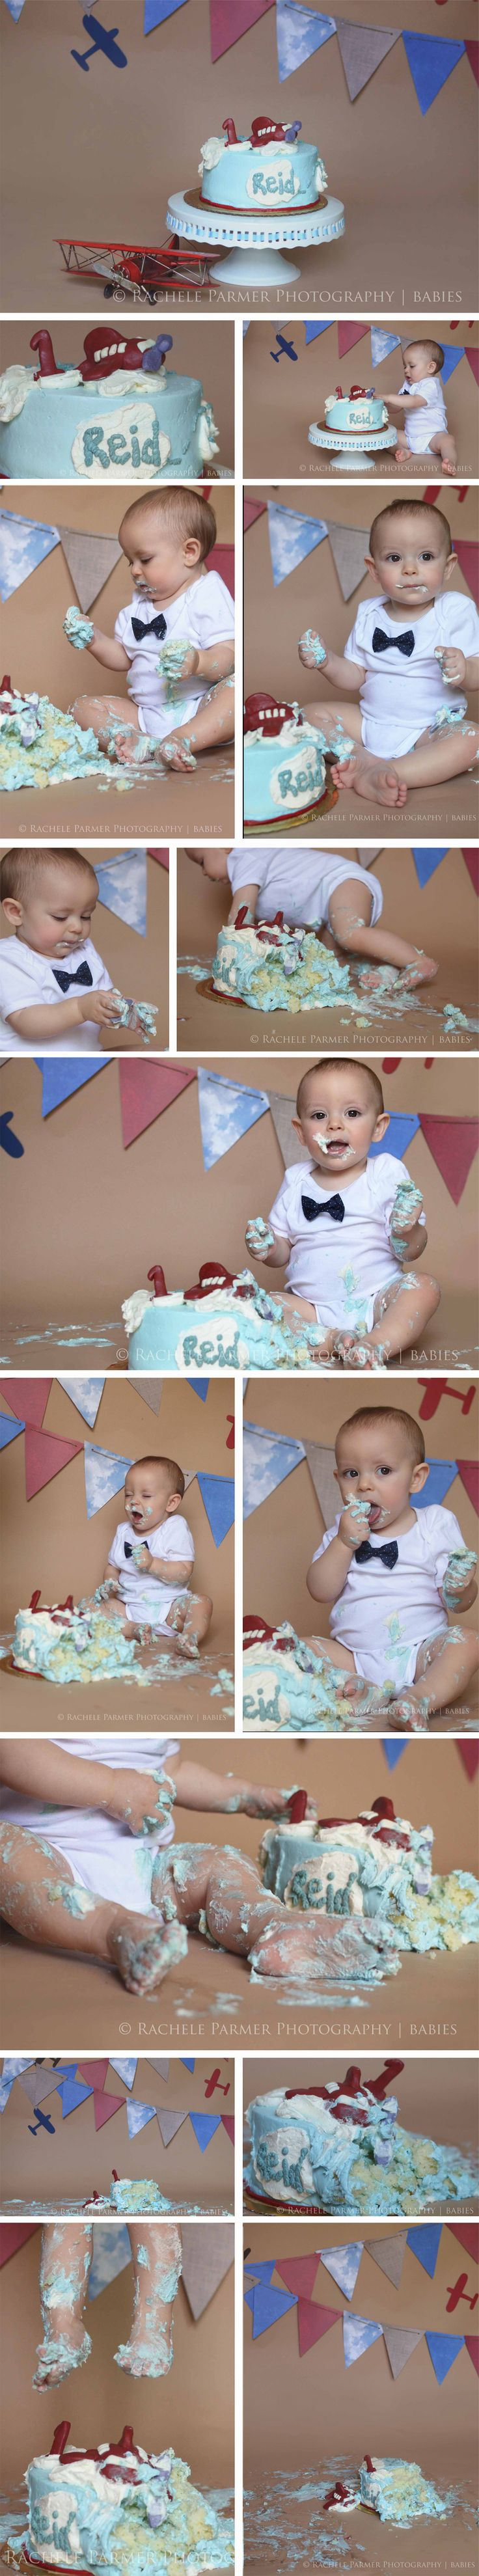 Time Flies Airplane Themed First Birthday Cake Smash | ©Rachele Parmer Photography